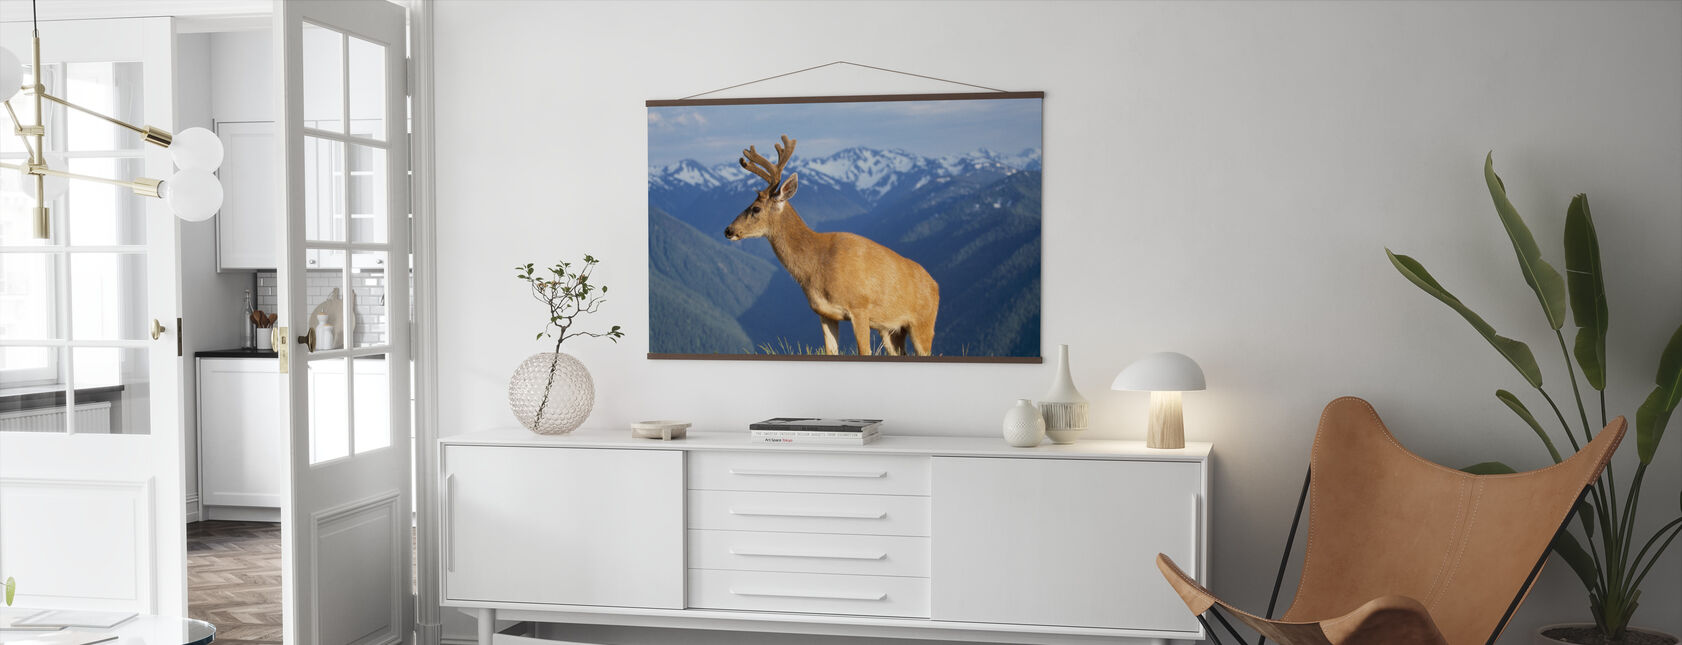 Reindeer and Mountains - Poster - Living Room